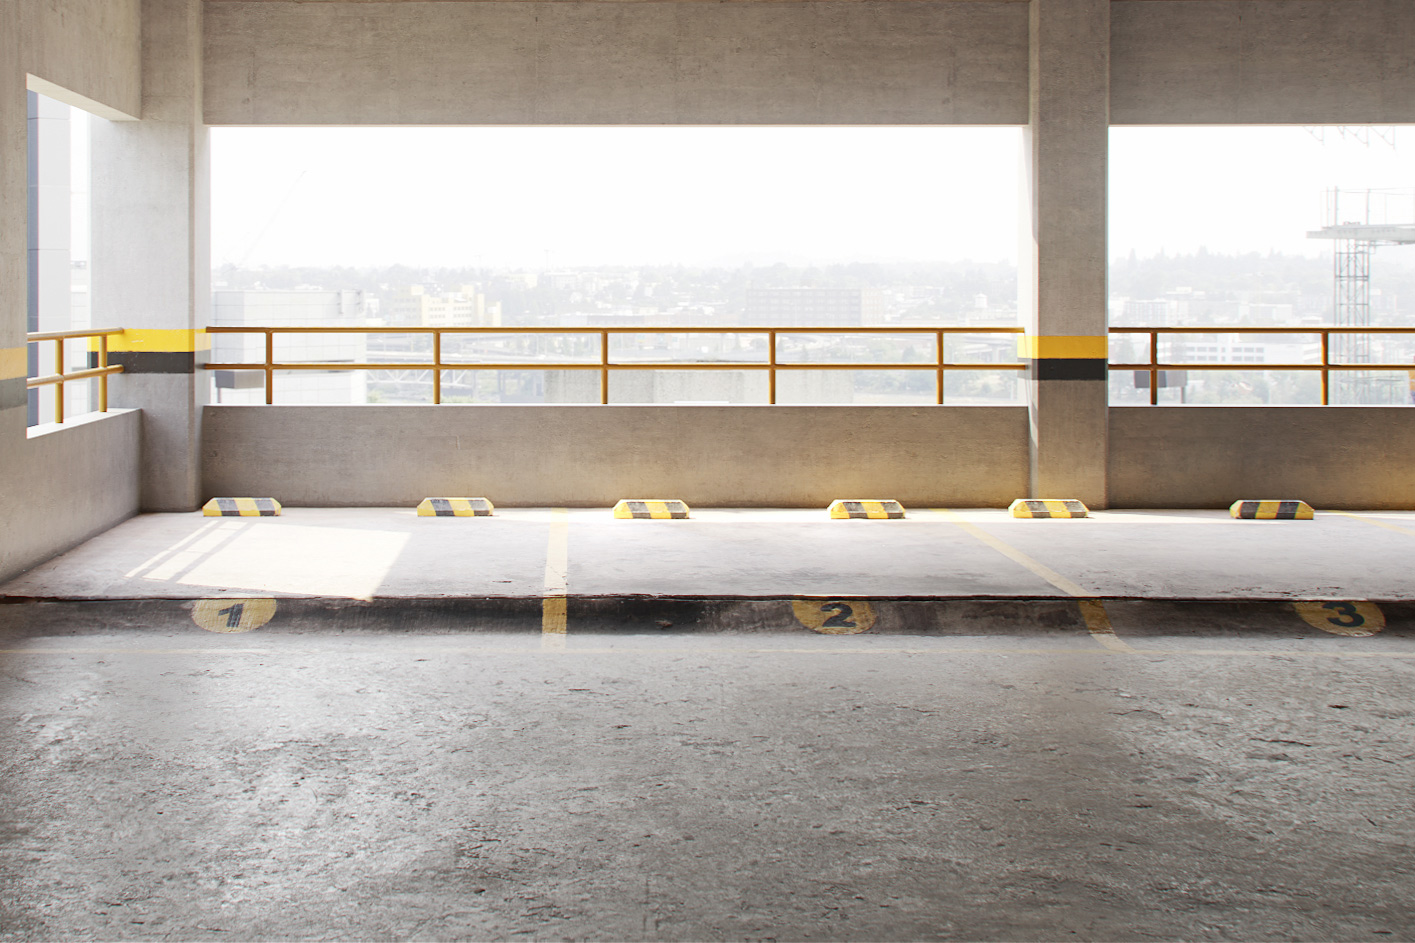 The image shows a render using the parking floor texture